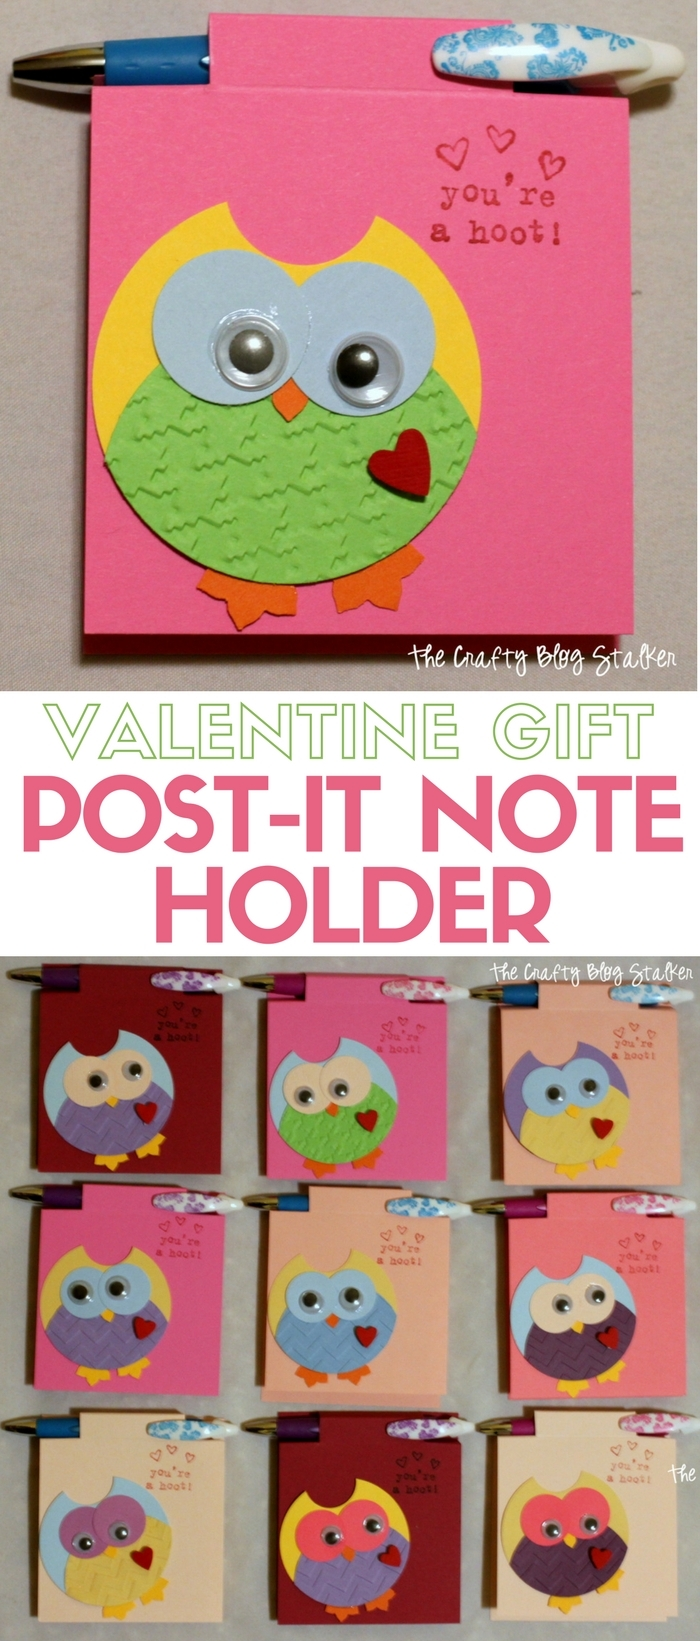 Make an easy DIY Valentine Gift Post-It Note Holder. Give as a teacher gift or to friends on Valentine's Day. A fun craft tutorial idea.